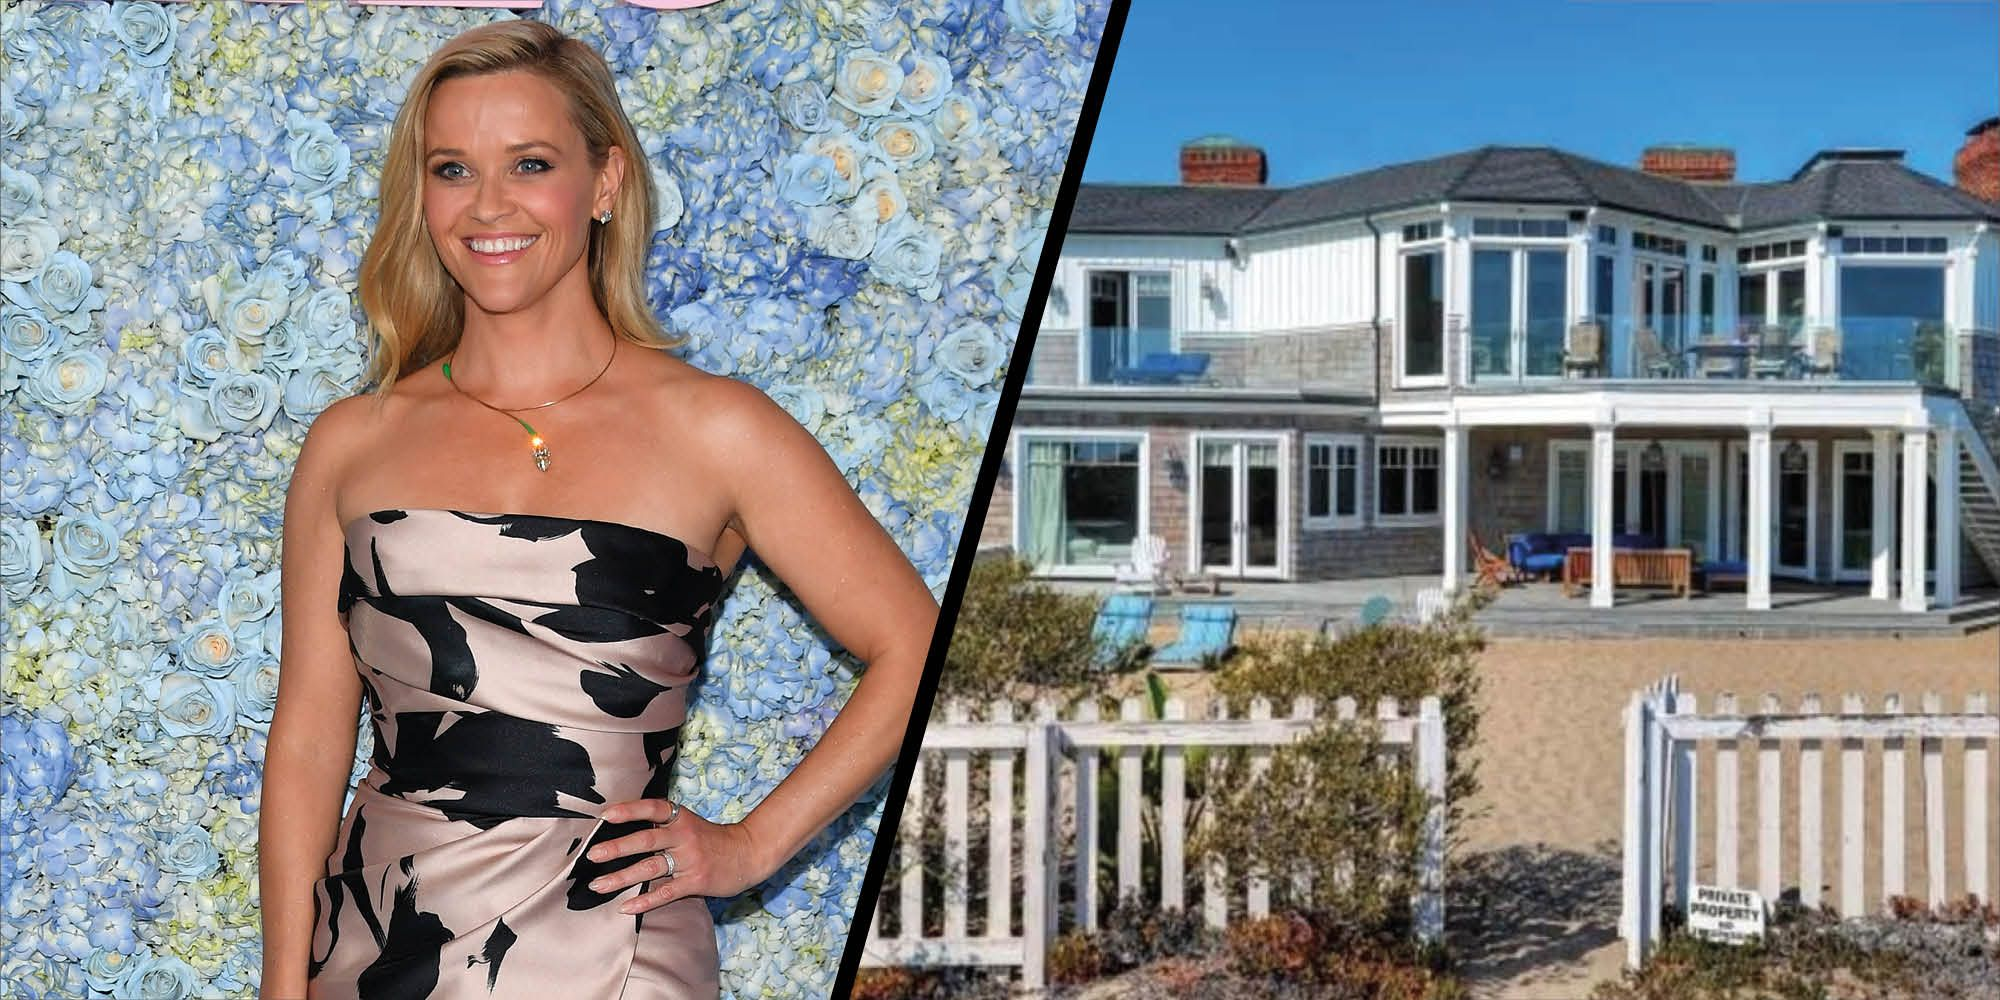 Reese Witherspoon's Big Little LiesMalibu mansion is available to rent